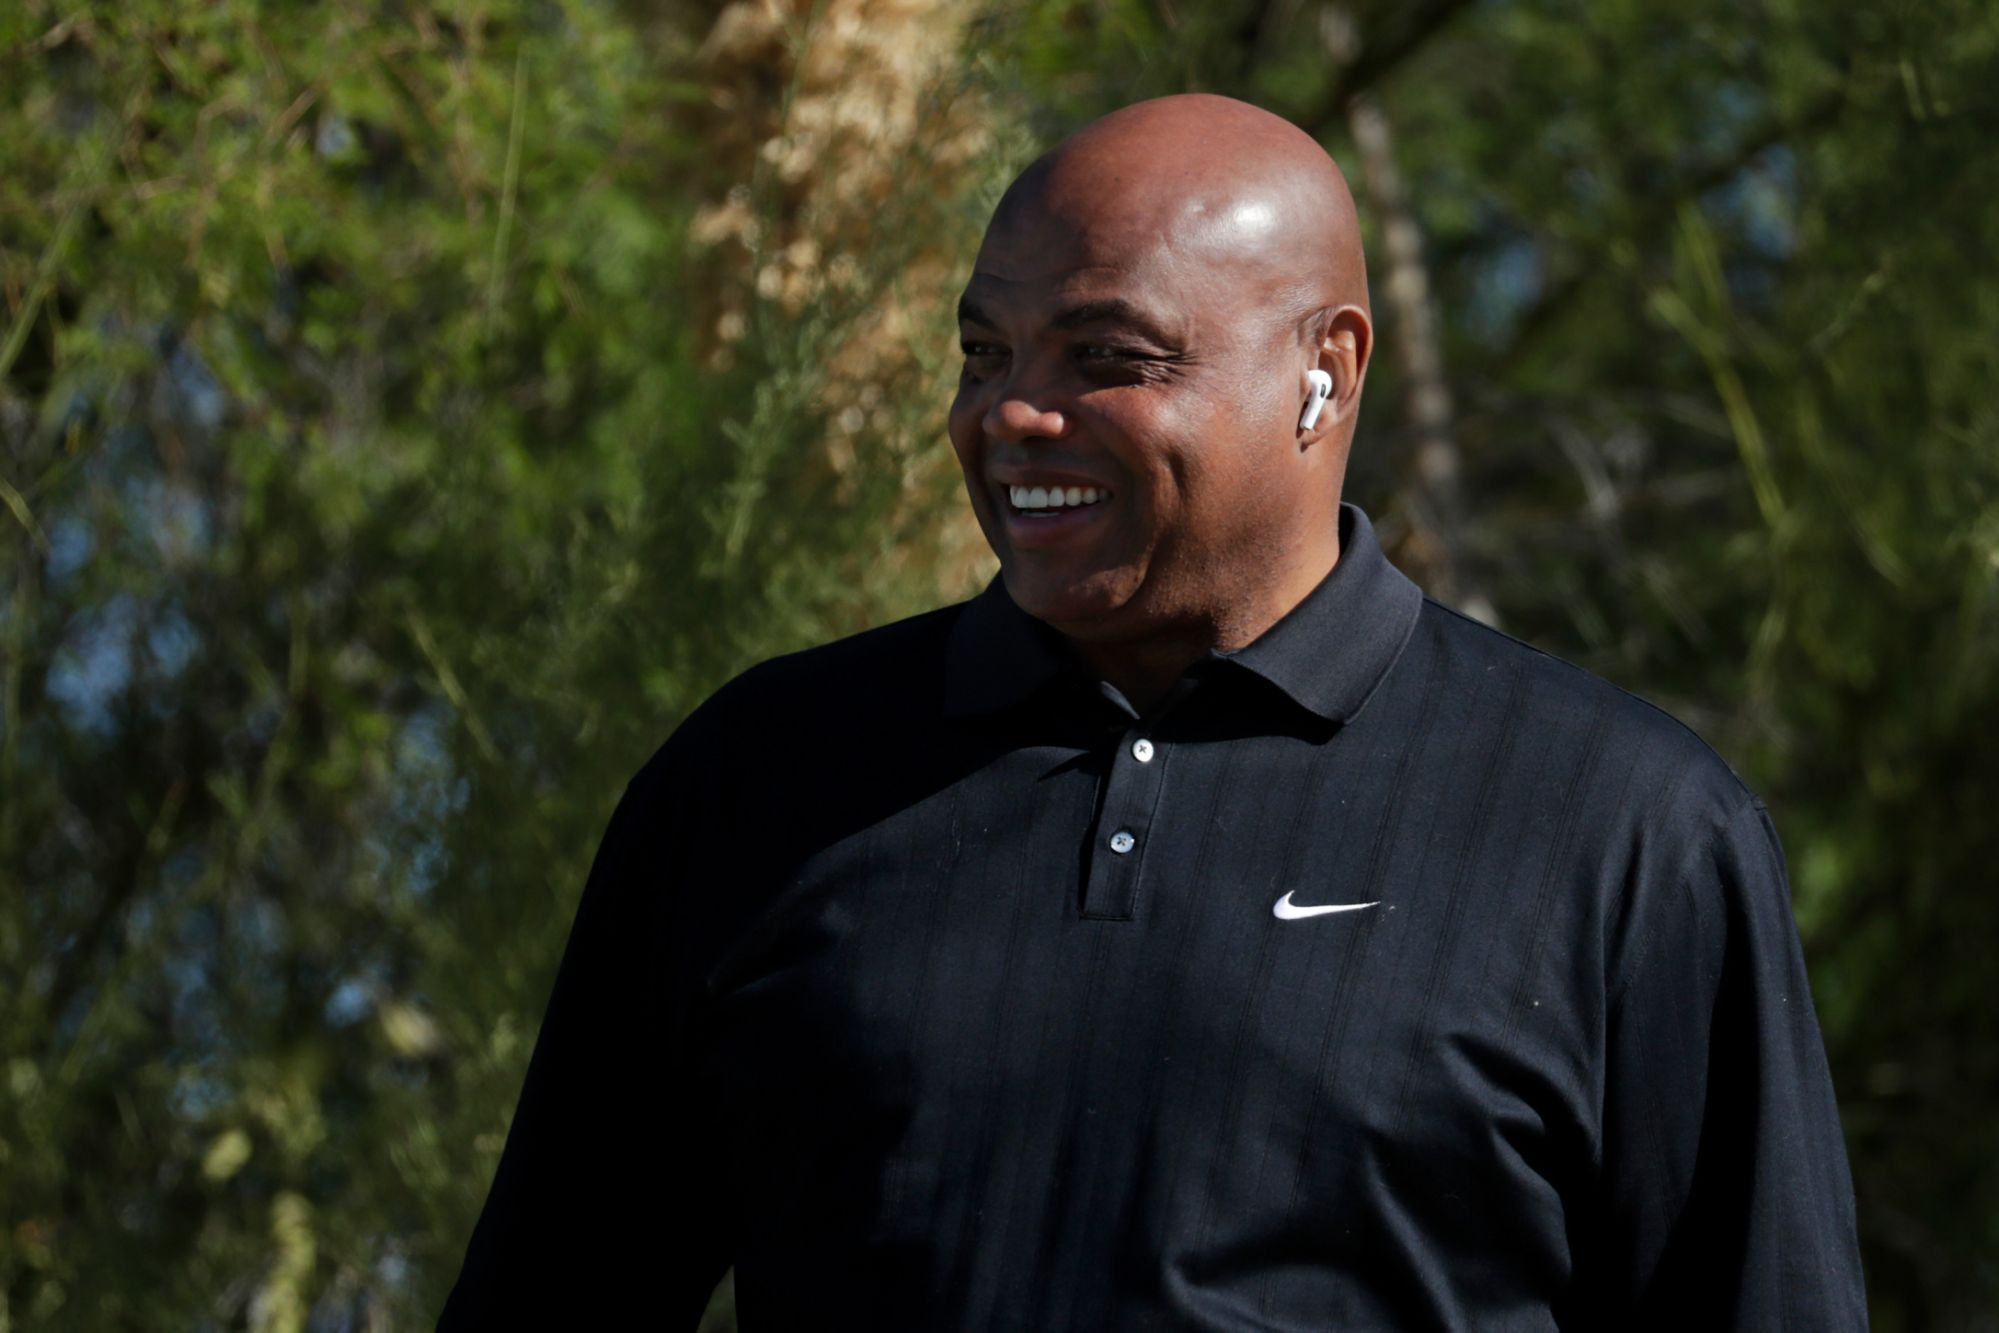 Phil Mickelson gifted Charles Barkley golf balls with Shaq's face on them during The Match